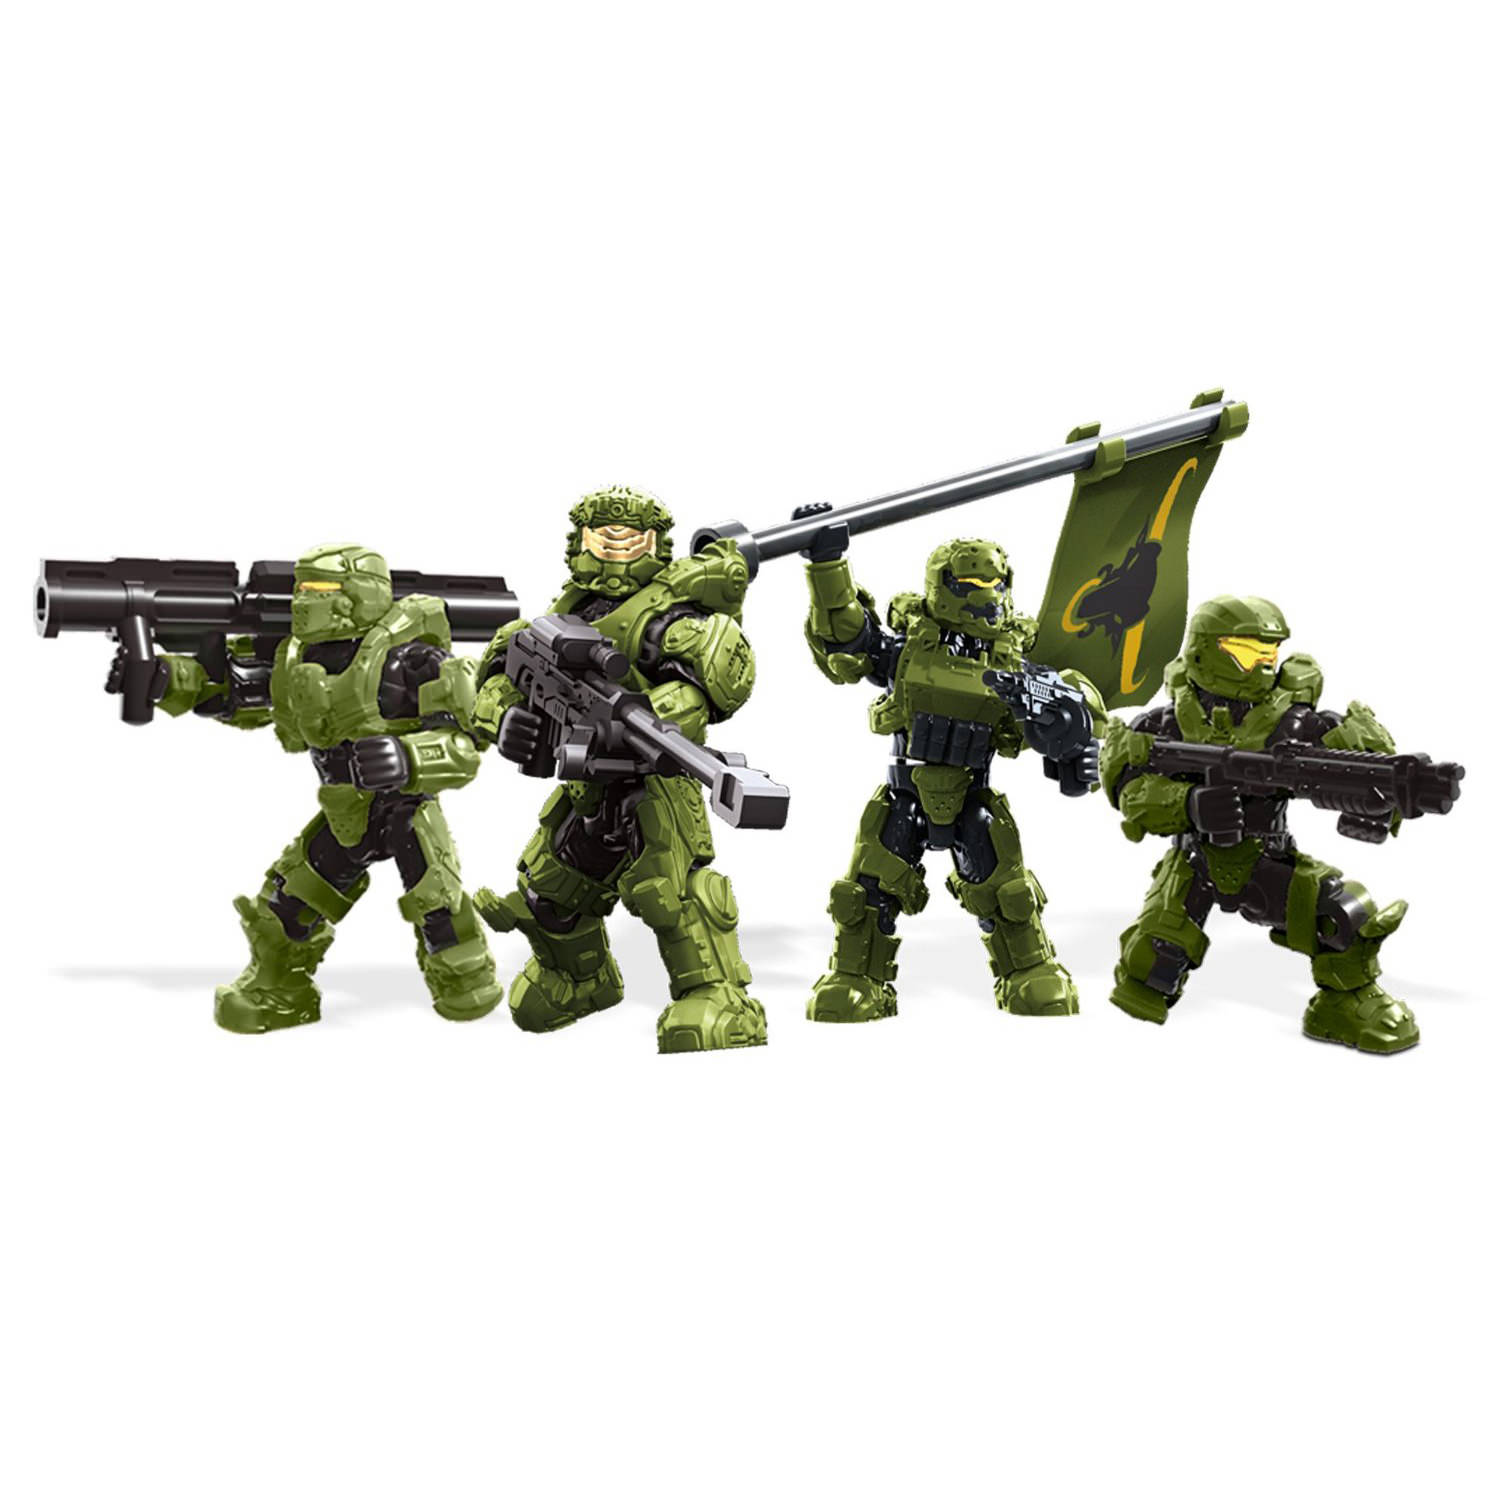 Mega Bloks Halo Unsc Fireteam Taurus At Hobby Warehouse